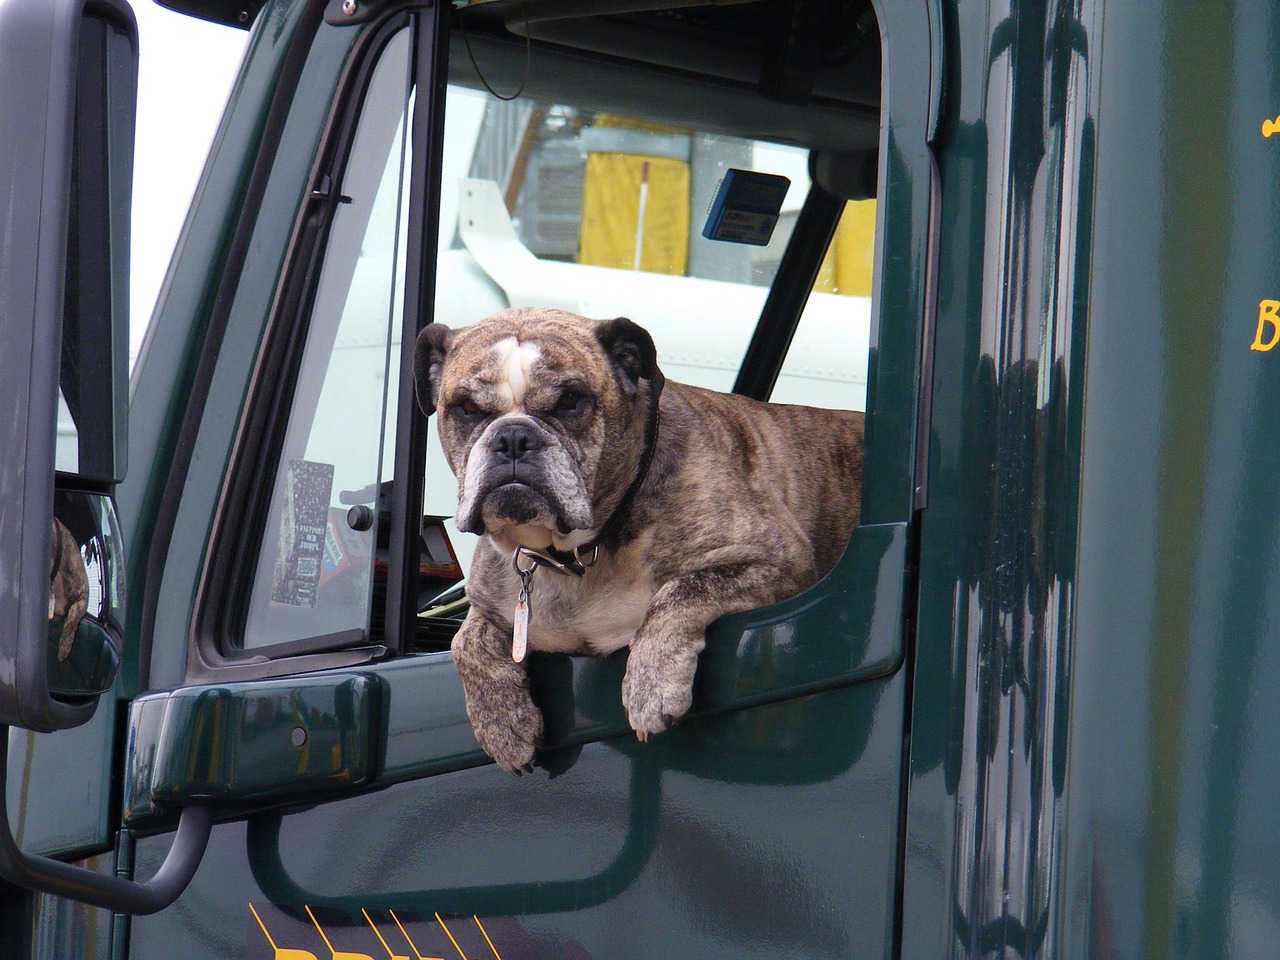 A dog leaning out the window of a truck